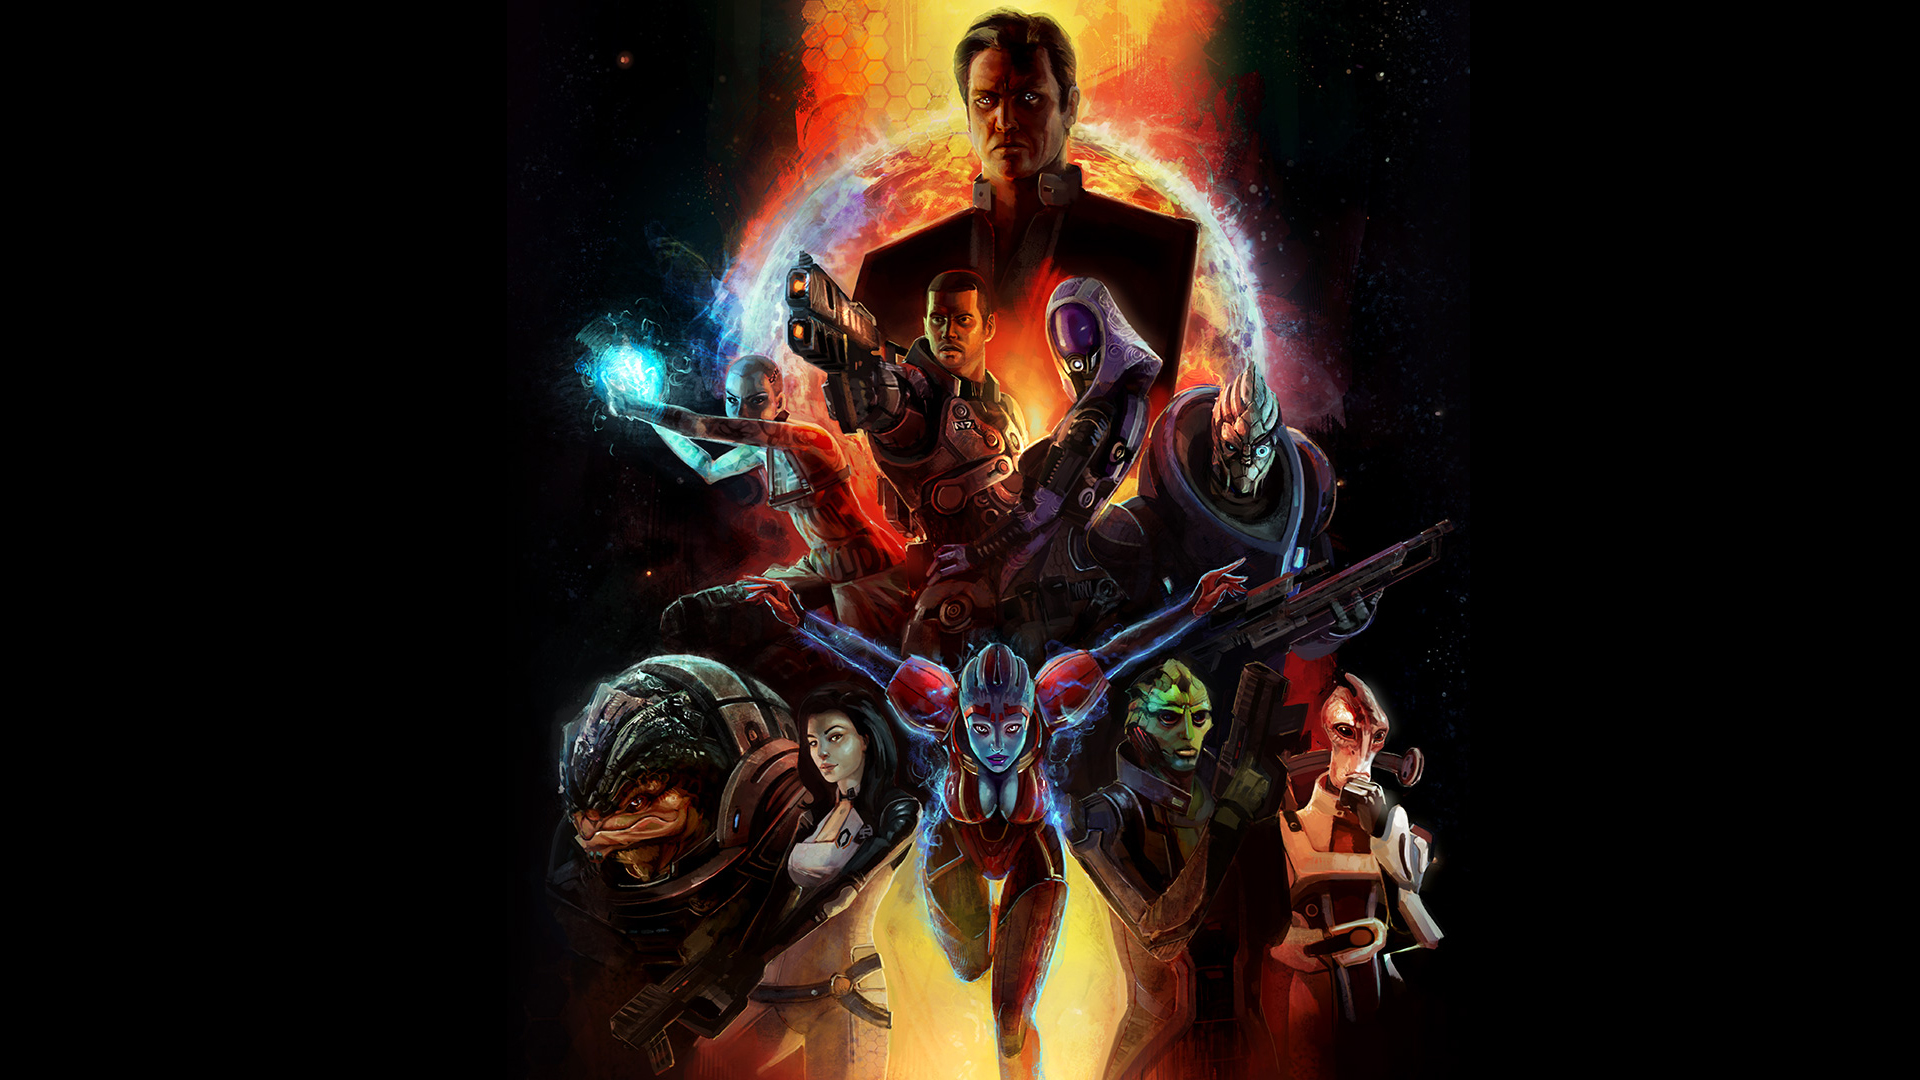 Mass Effect 2 Hd Hd Games 4k Wallpapers Images